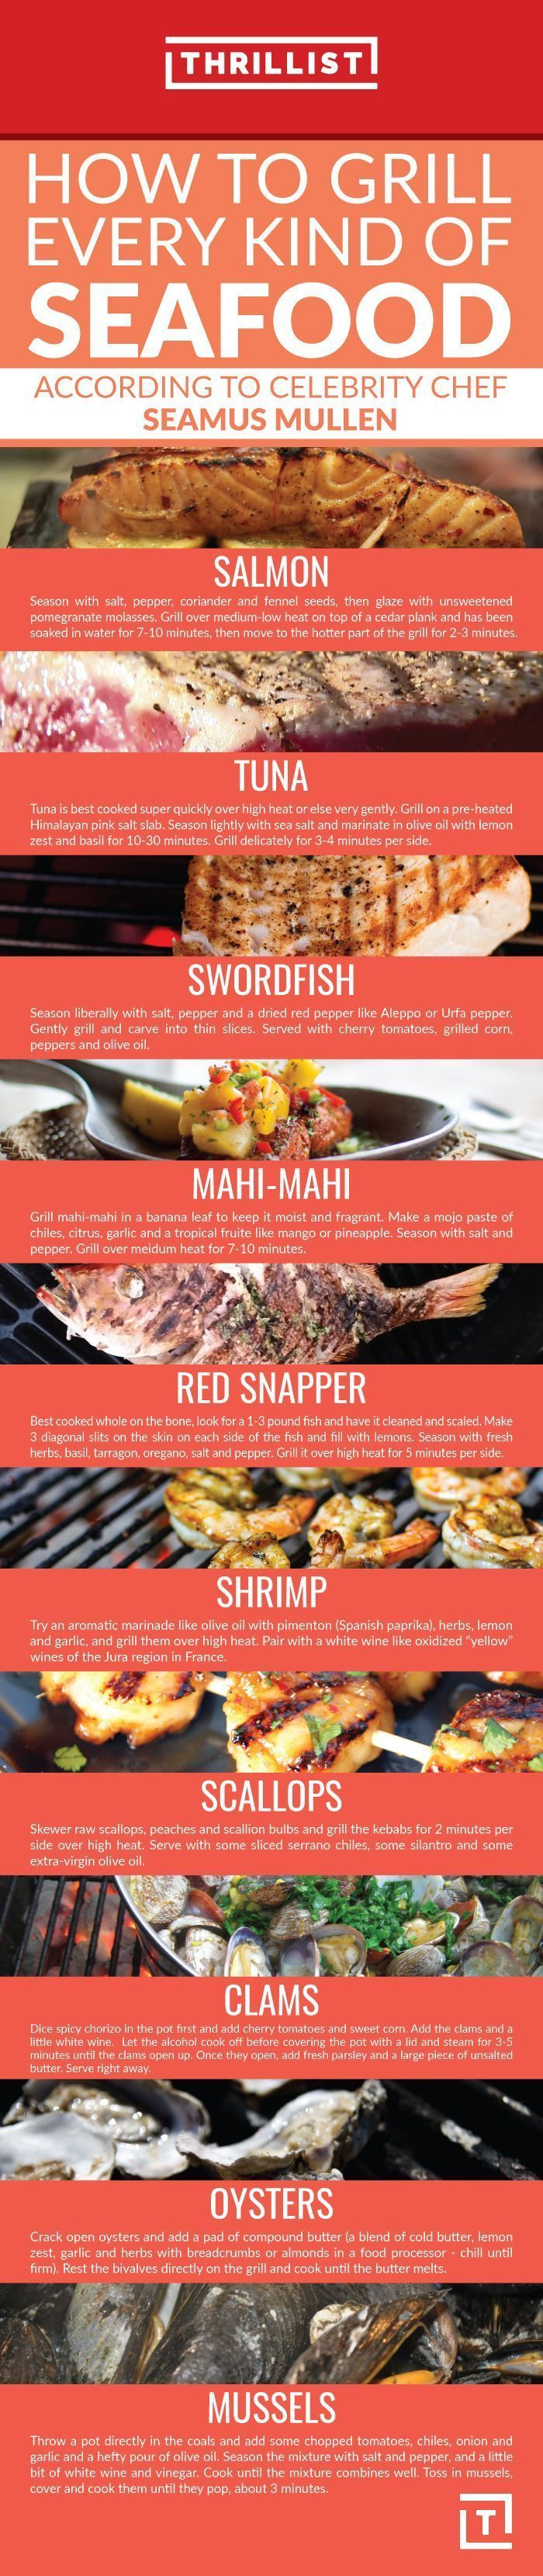 Best 25+ Fish restaurant nyc ideas on Pinterest | Fish bar nyc ...